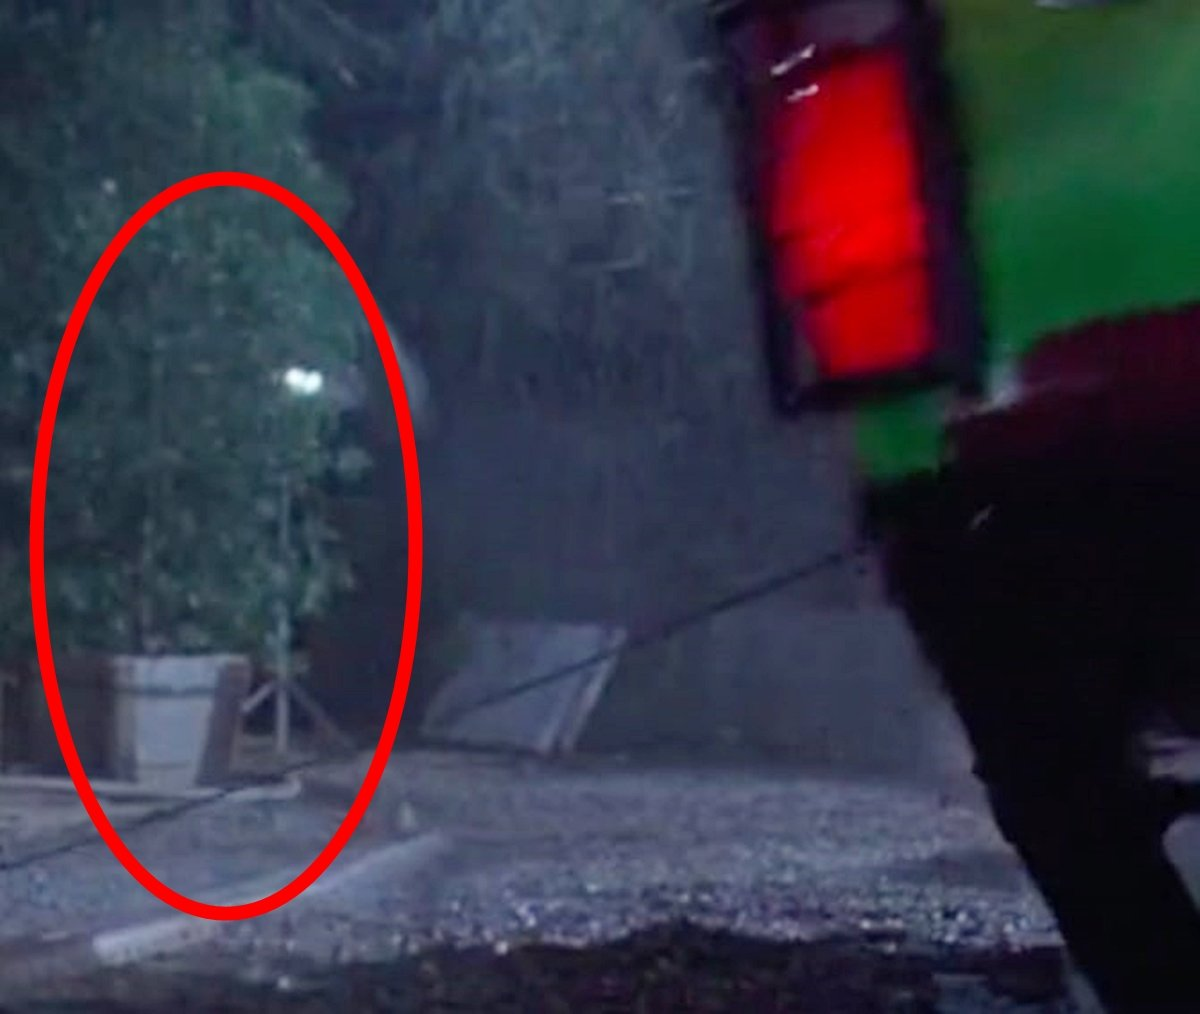 PLANT 25 Things You Probably Missed In Jurassic Park